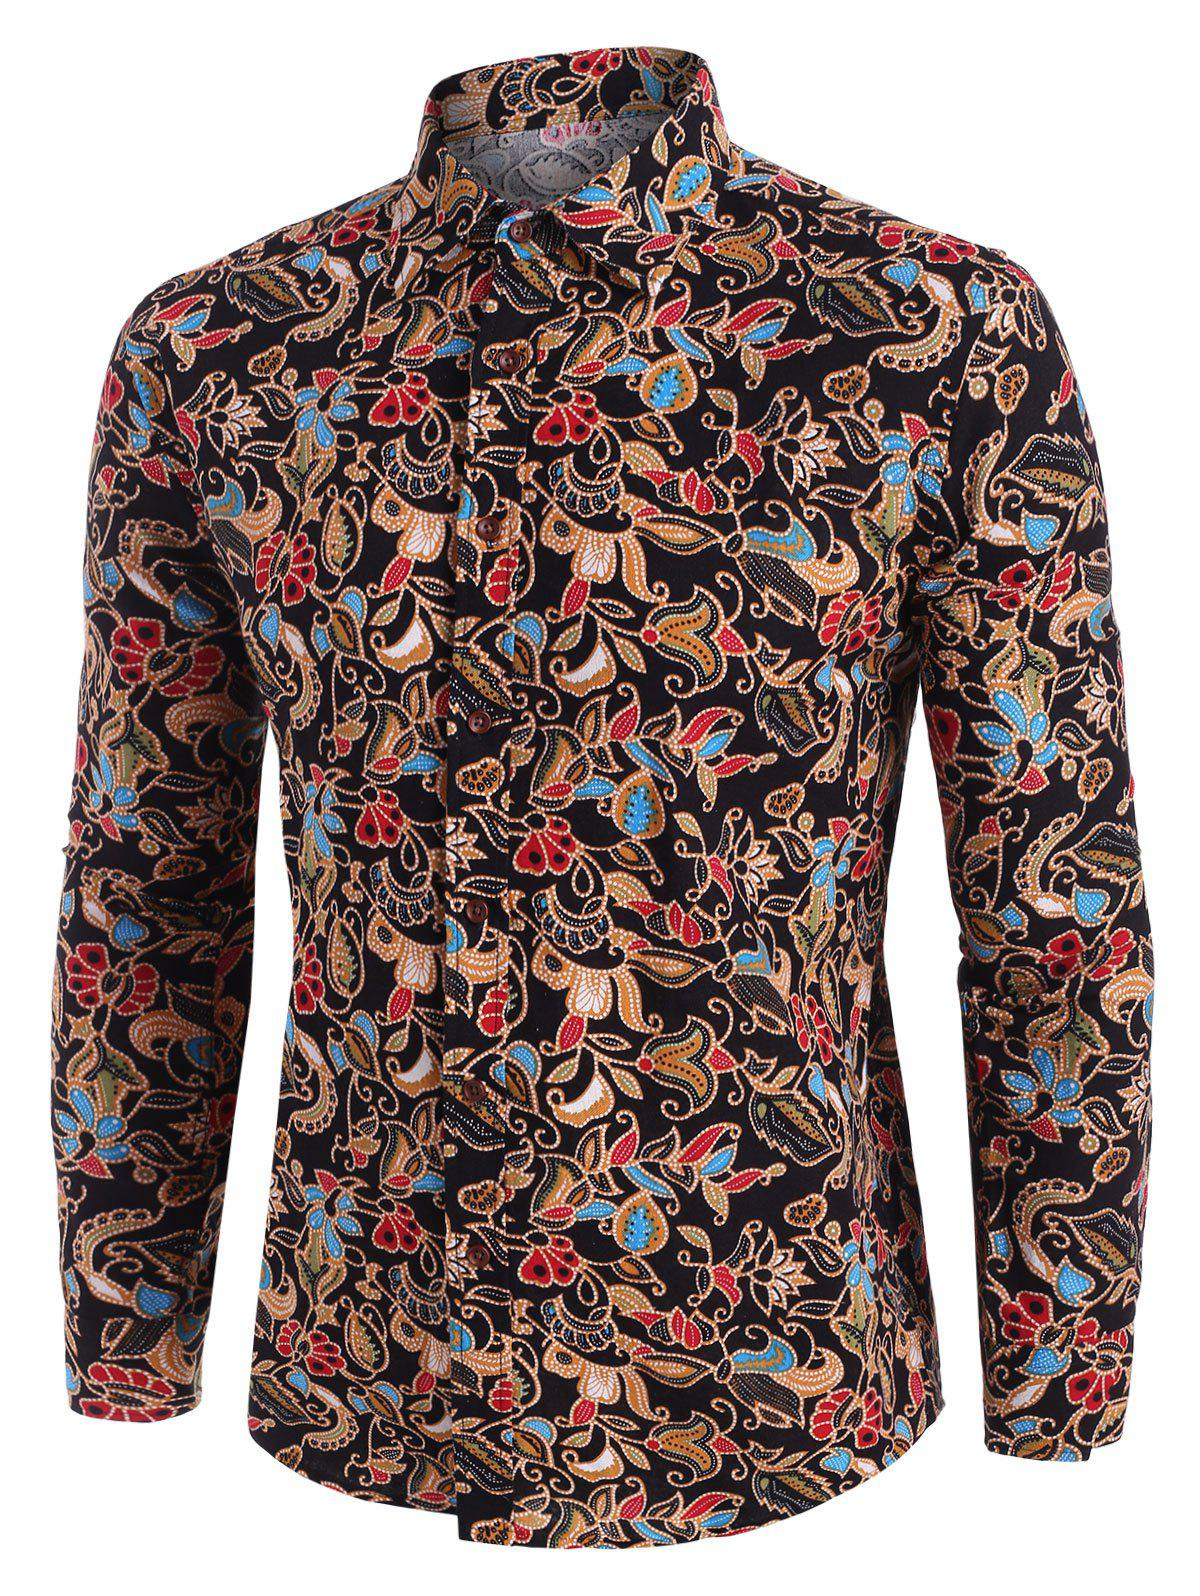 Buy Floral Print Ethnic Style Long Sleeve Shirt